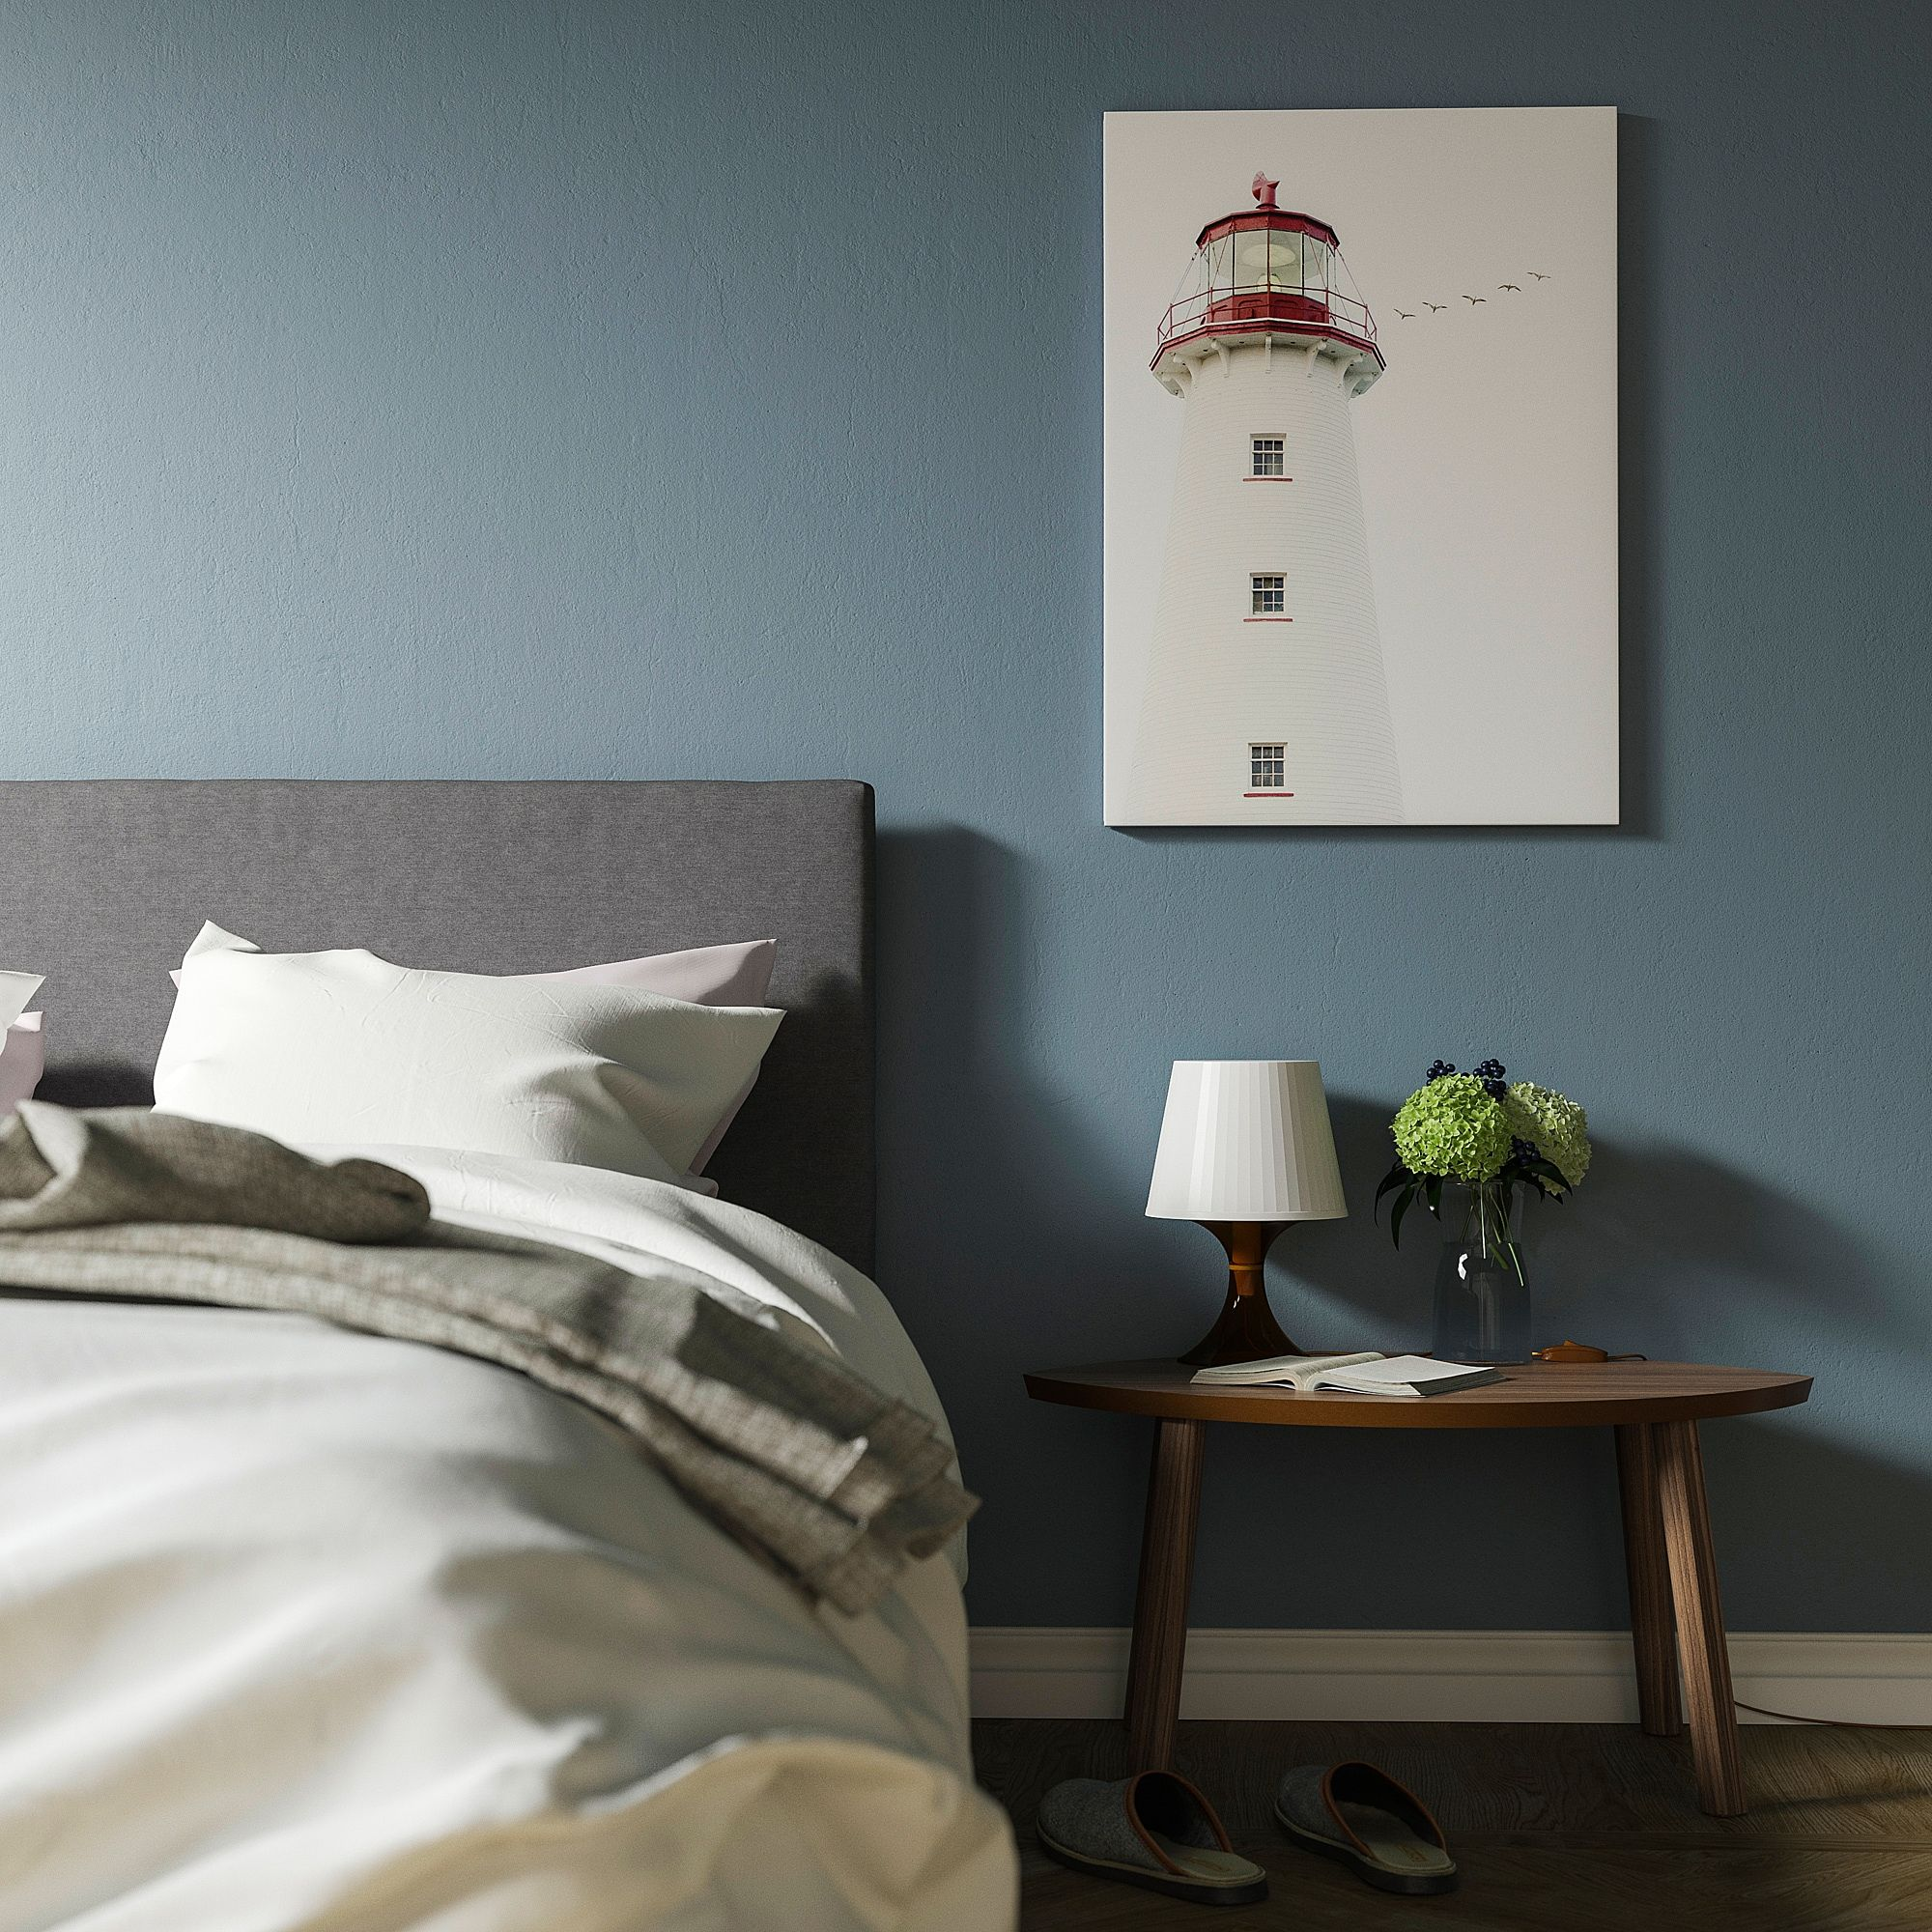 Ikea Pjatteryd Lighthouse Picture Ikea Decorate Your Room Room